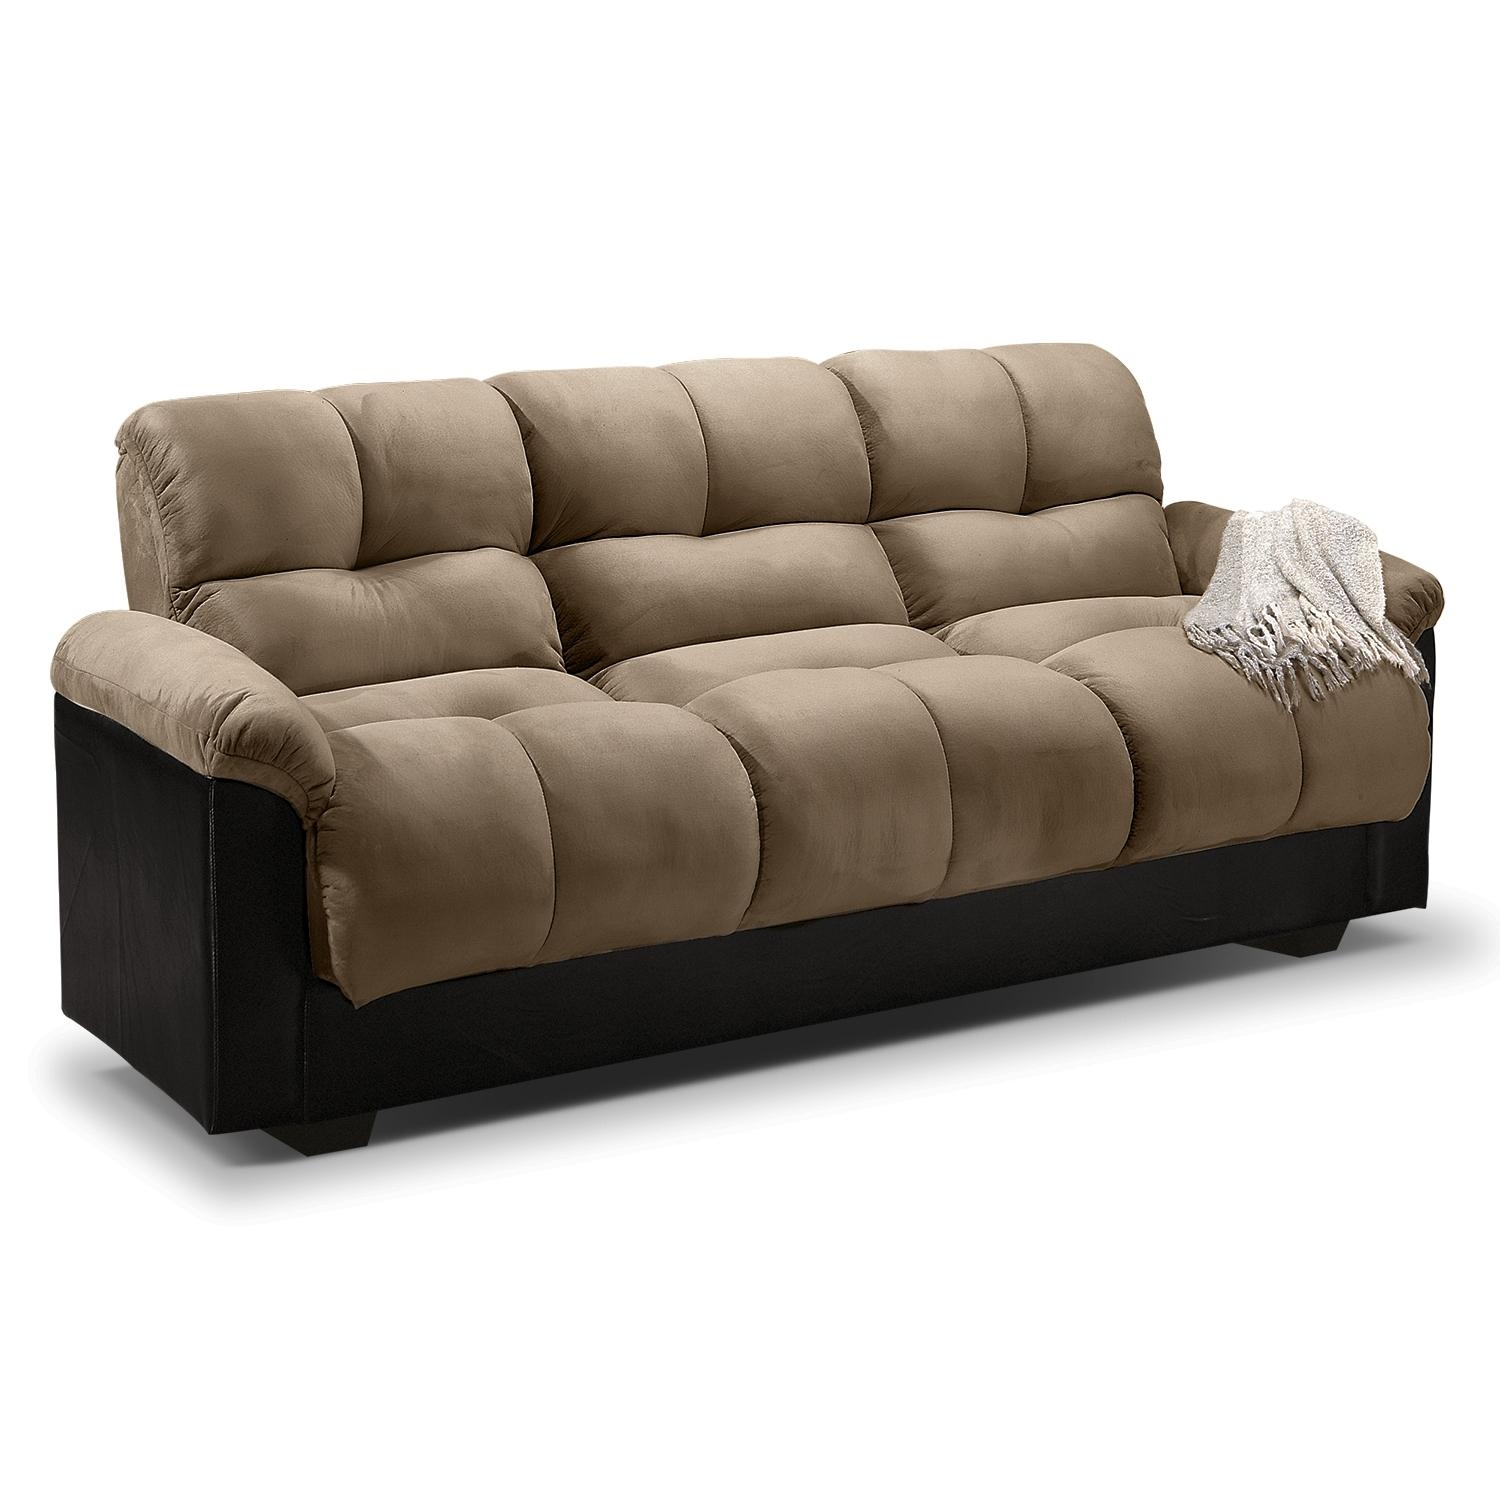 Sofas Center : Convertible Futon Sofa With Lounge Belle White With Regard To Convertible Futon Sofa Beds (Image 18 of 20)